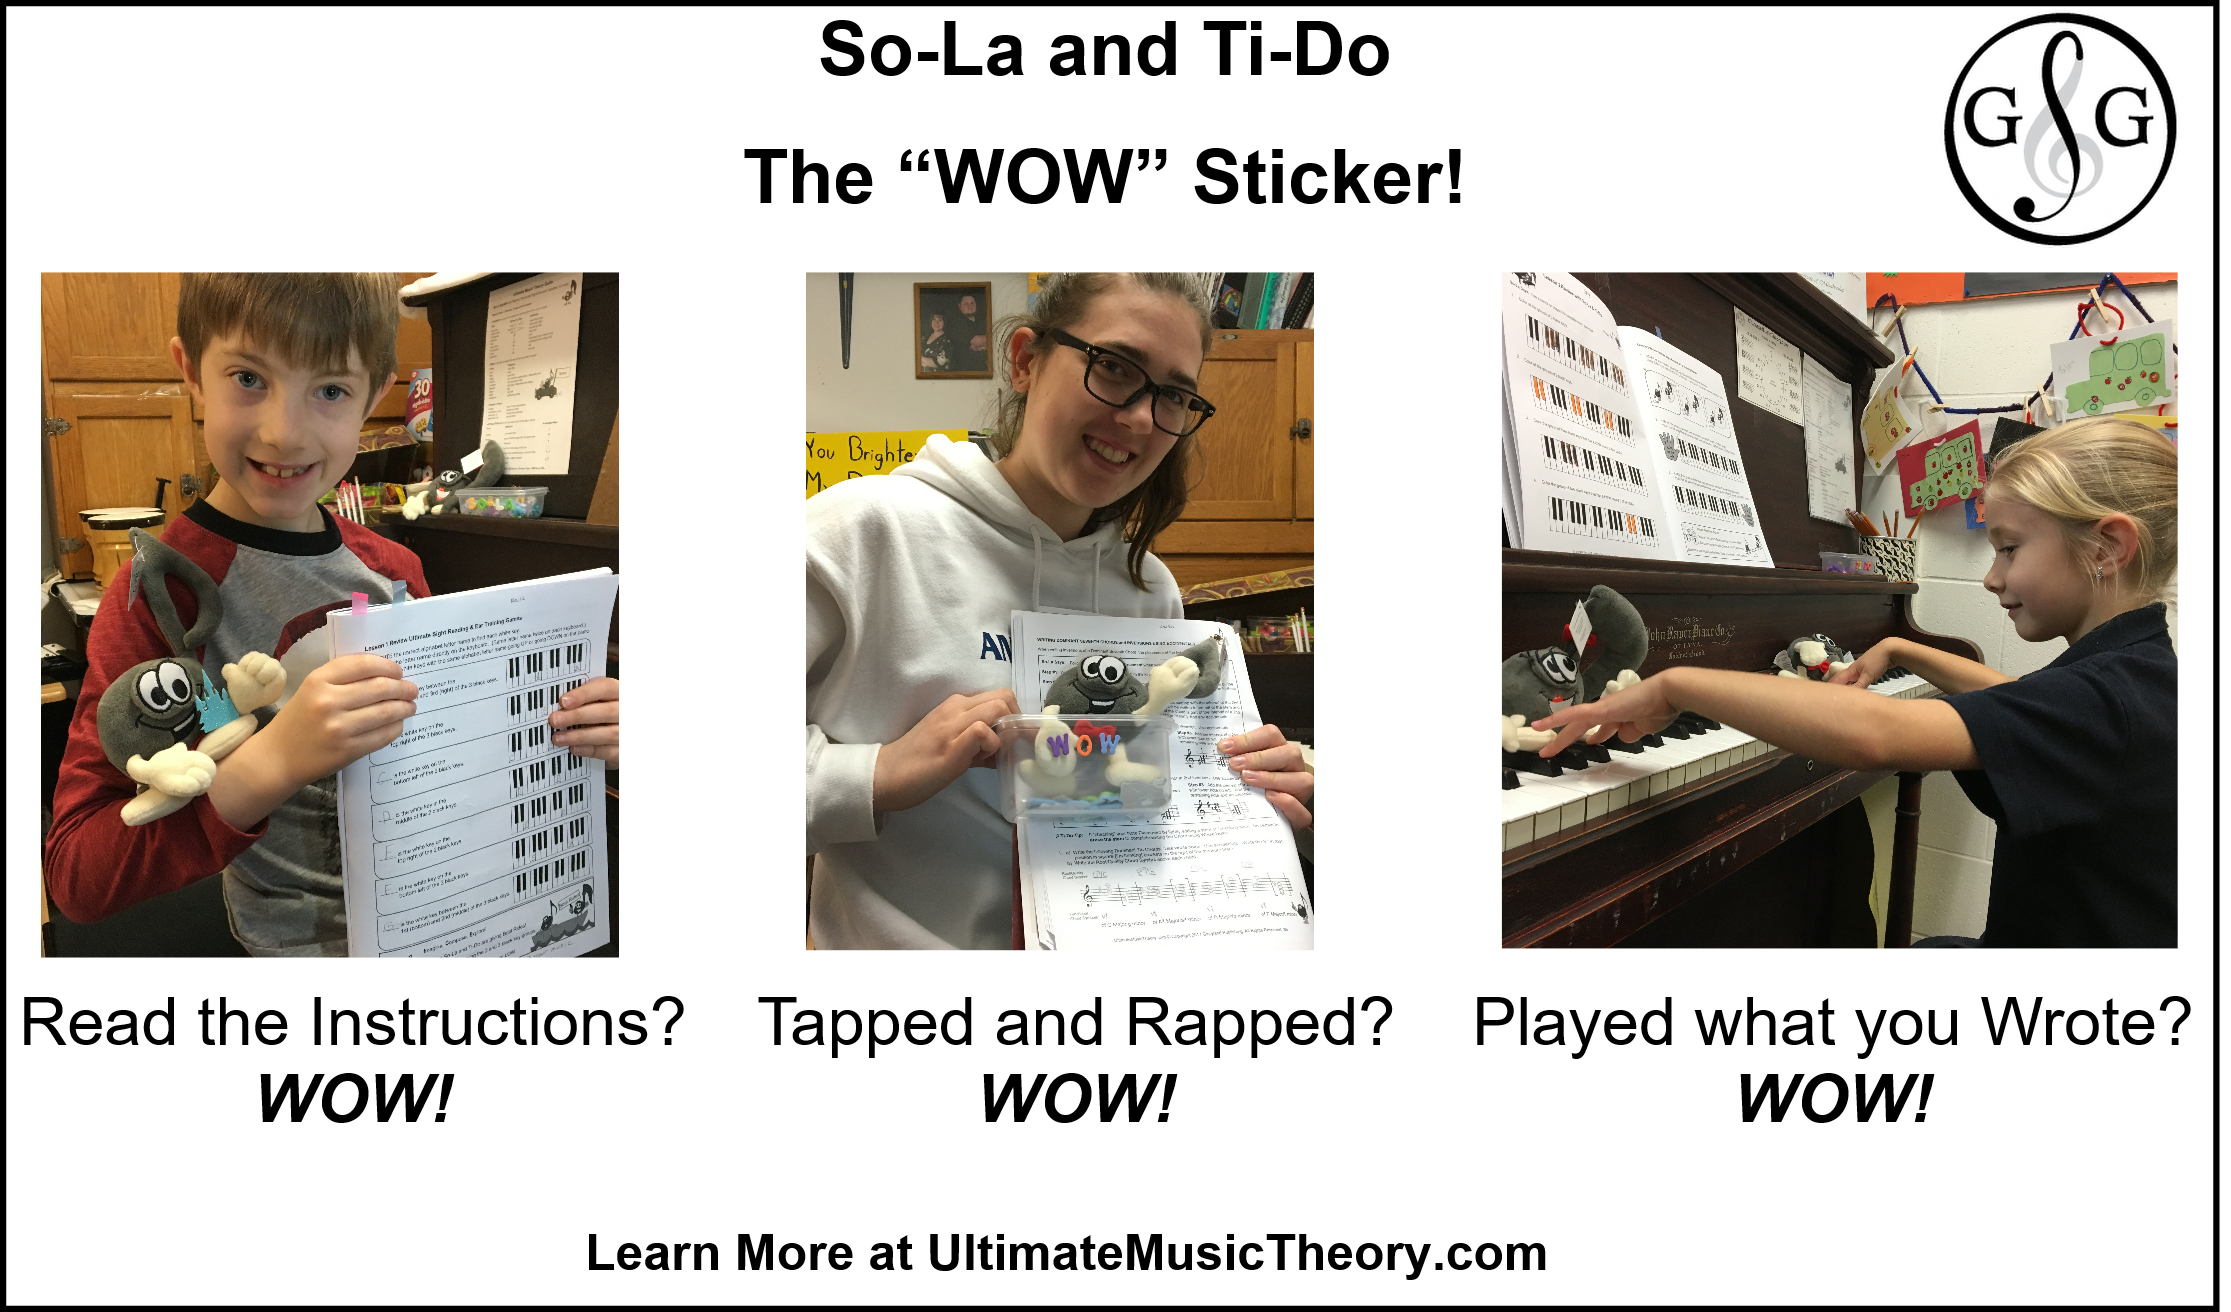 UMT - So-La and Ti-Do The Wow Sticker